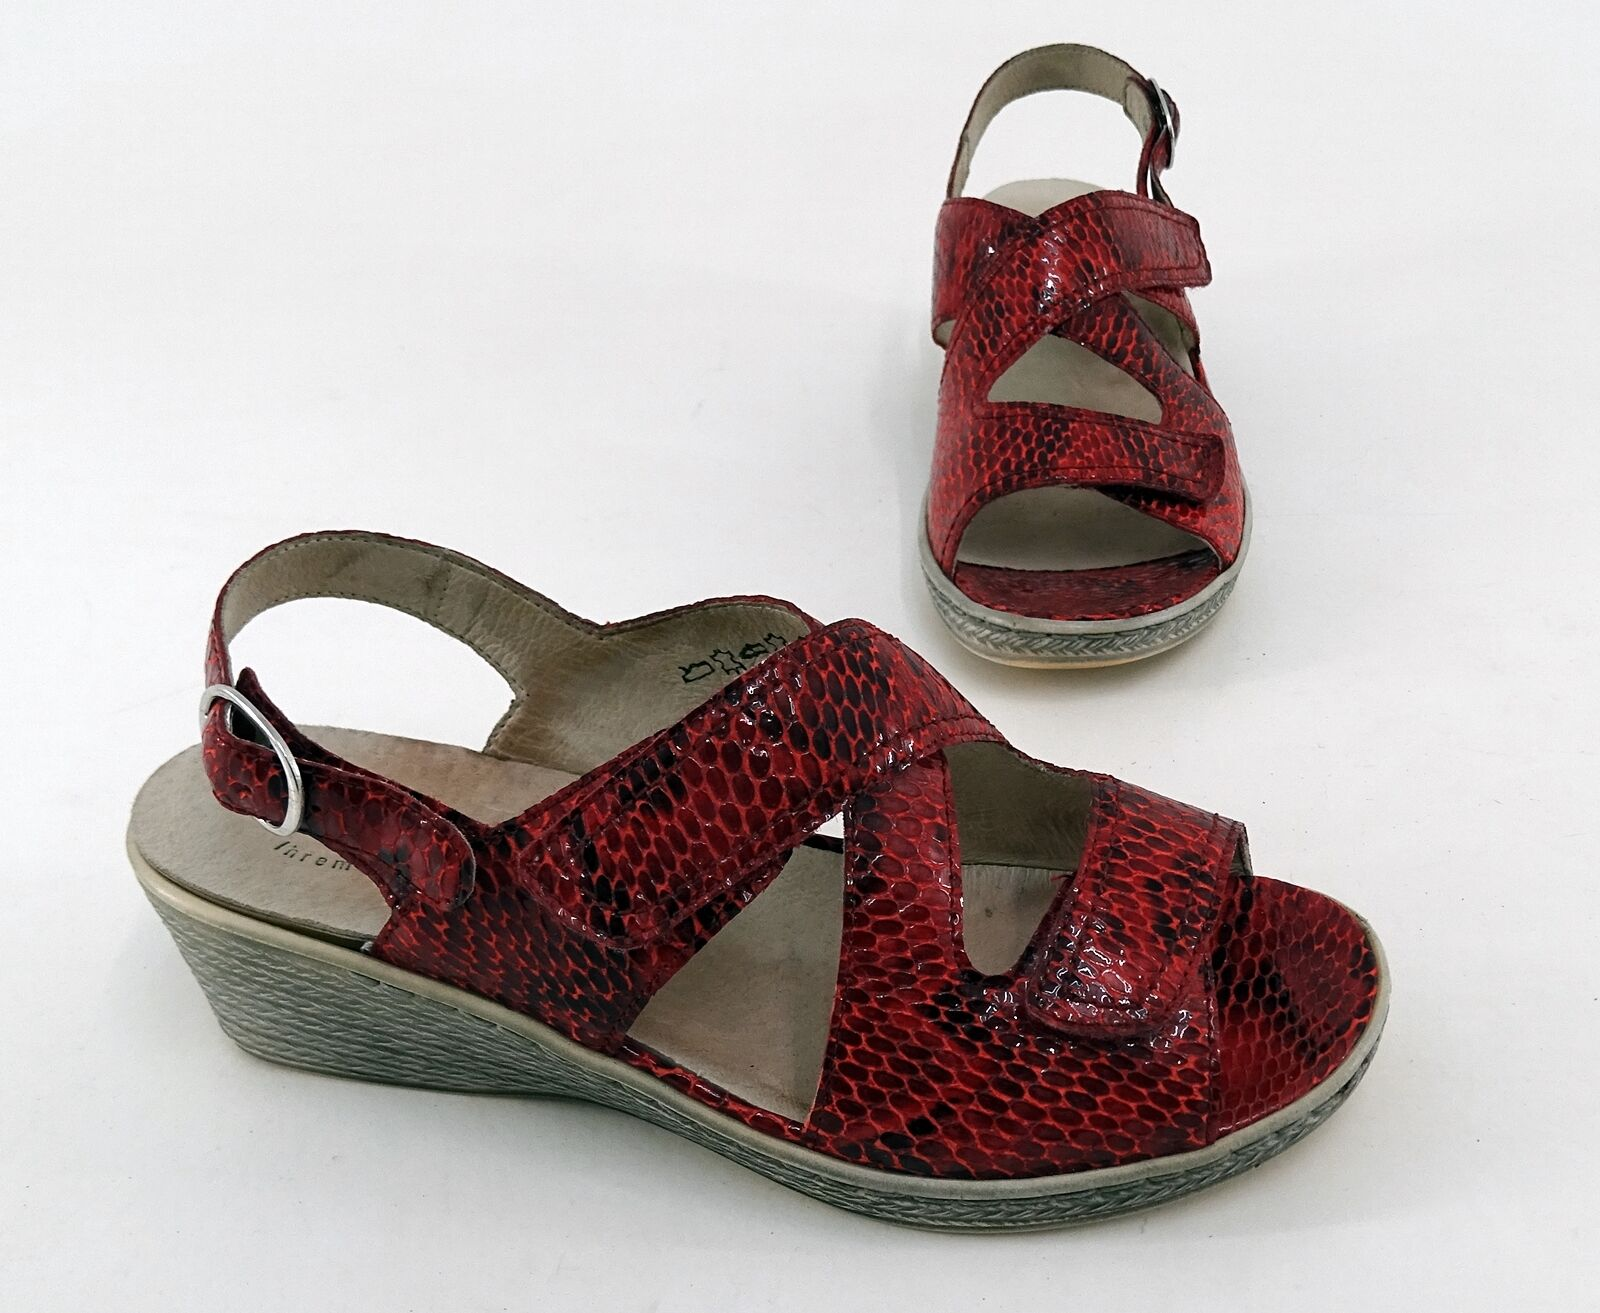 Sandals Vitaform Real Leather Wedge Red Size 39 H